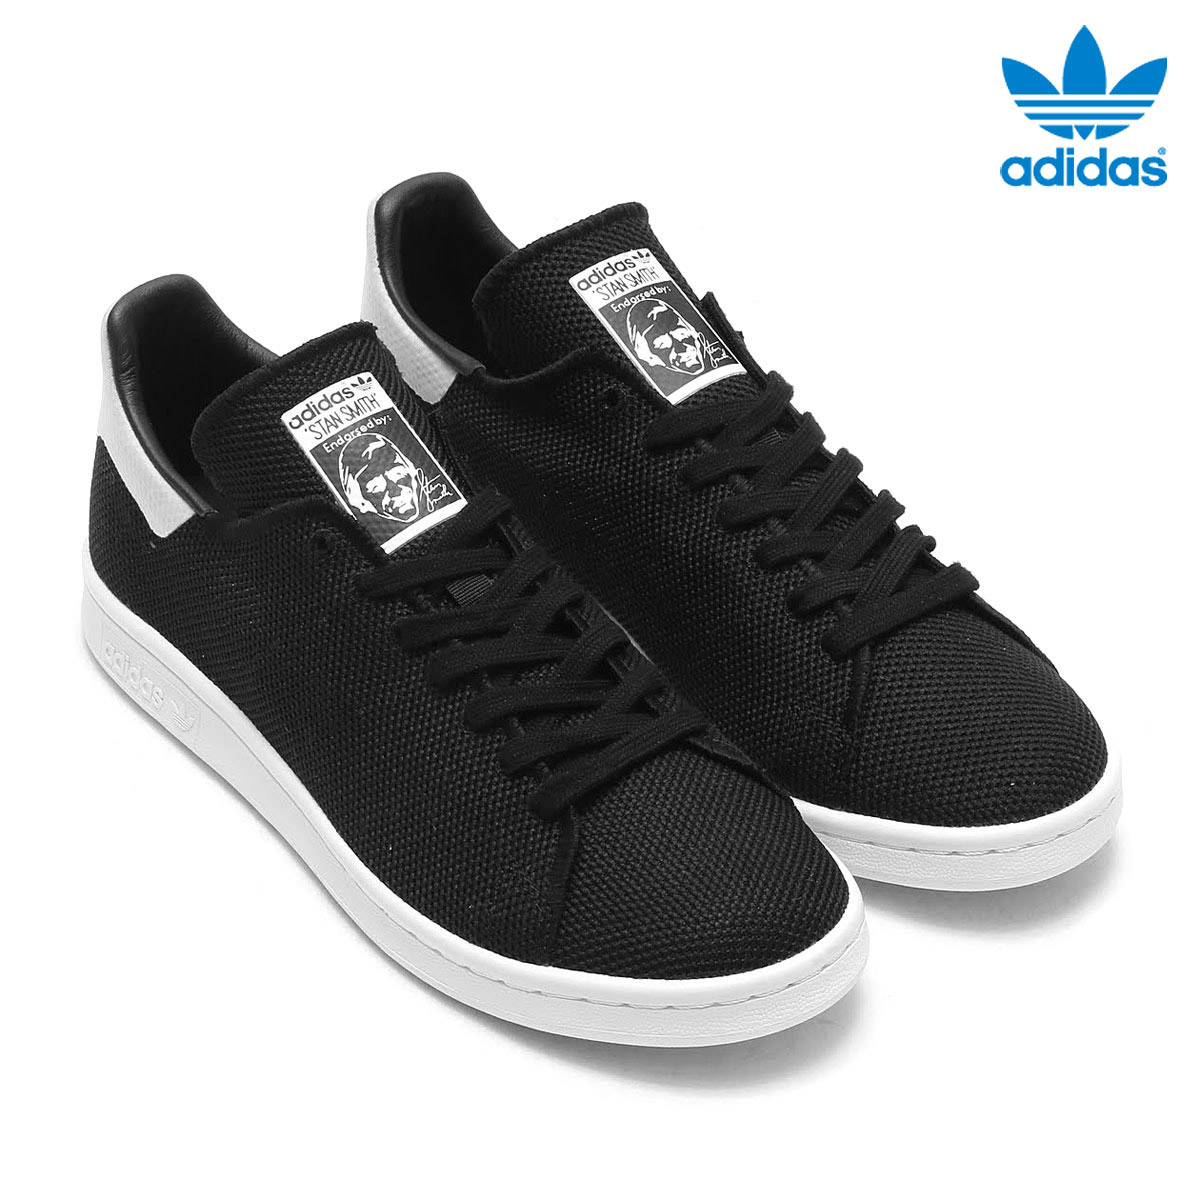 watch d8c5b b7fa3 adidas Originals STAN SMITH (Adidas originals Stan Smith) (Core Black/Core  Black/Running White) 17SS-I